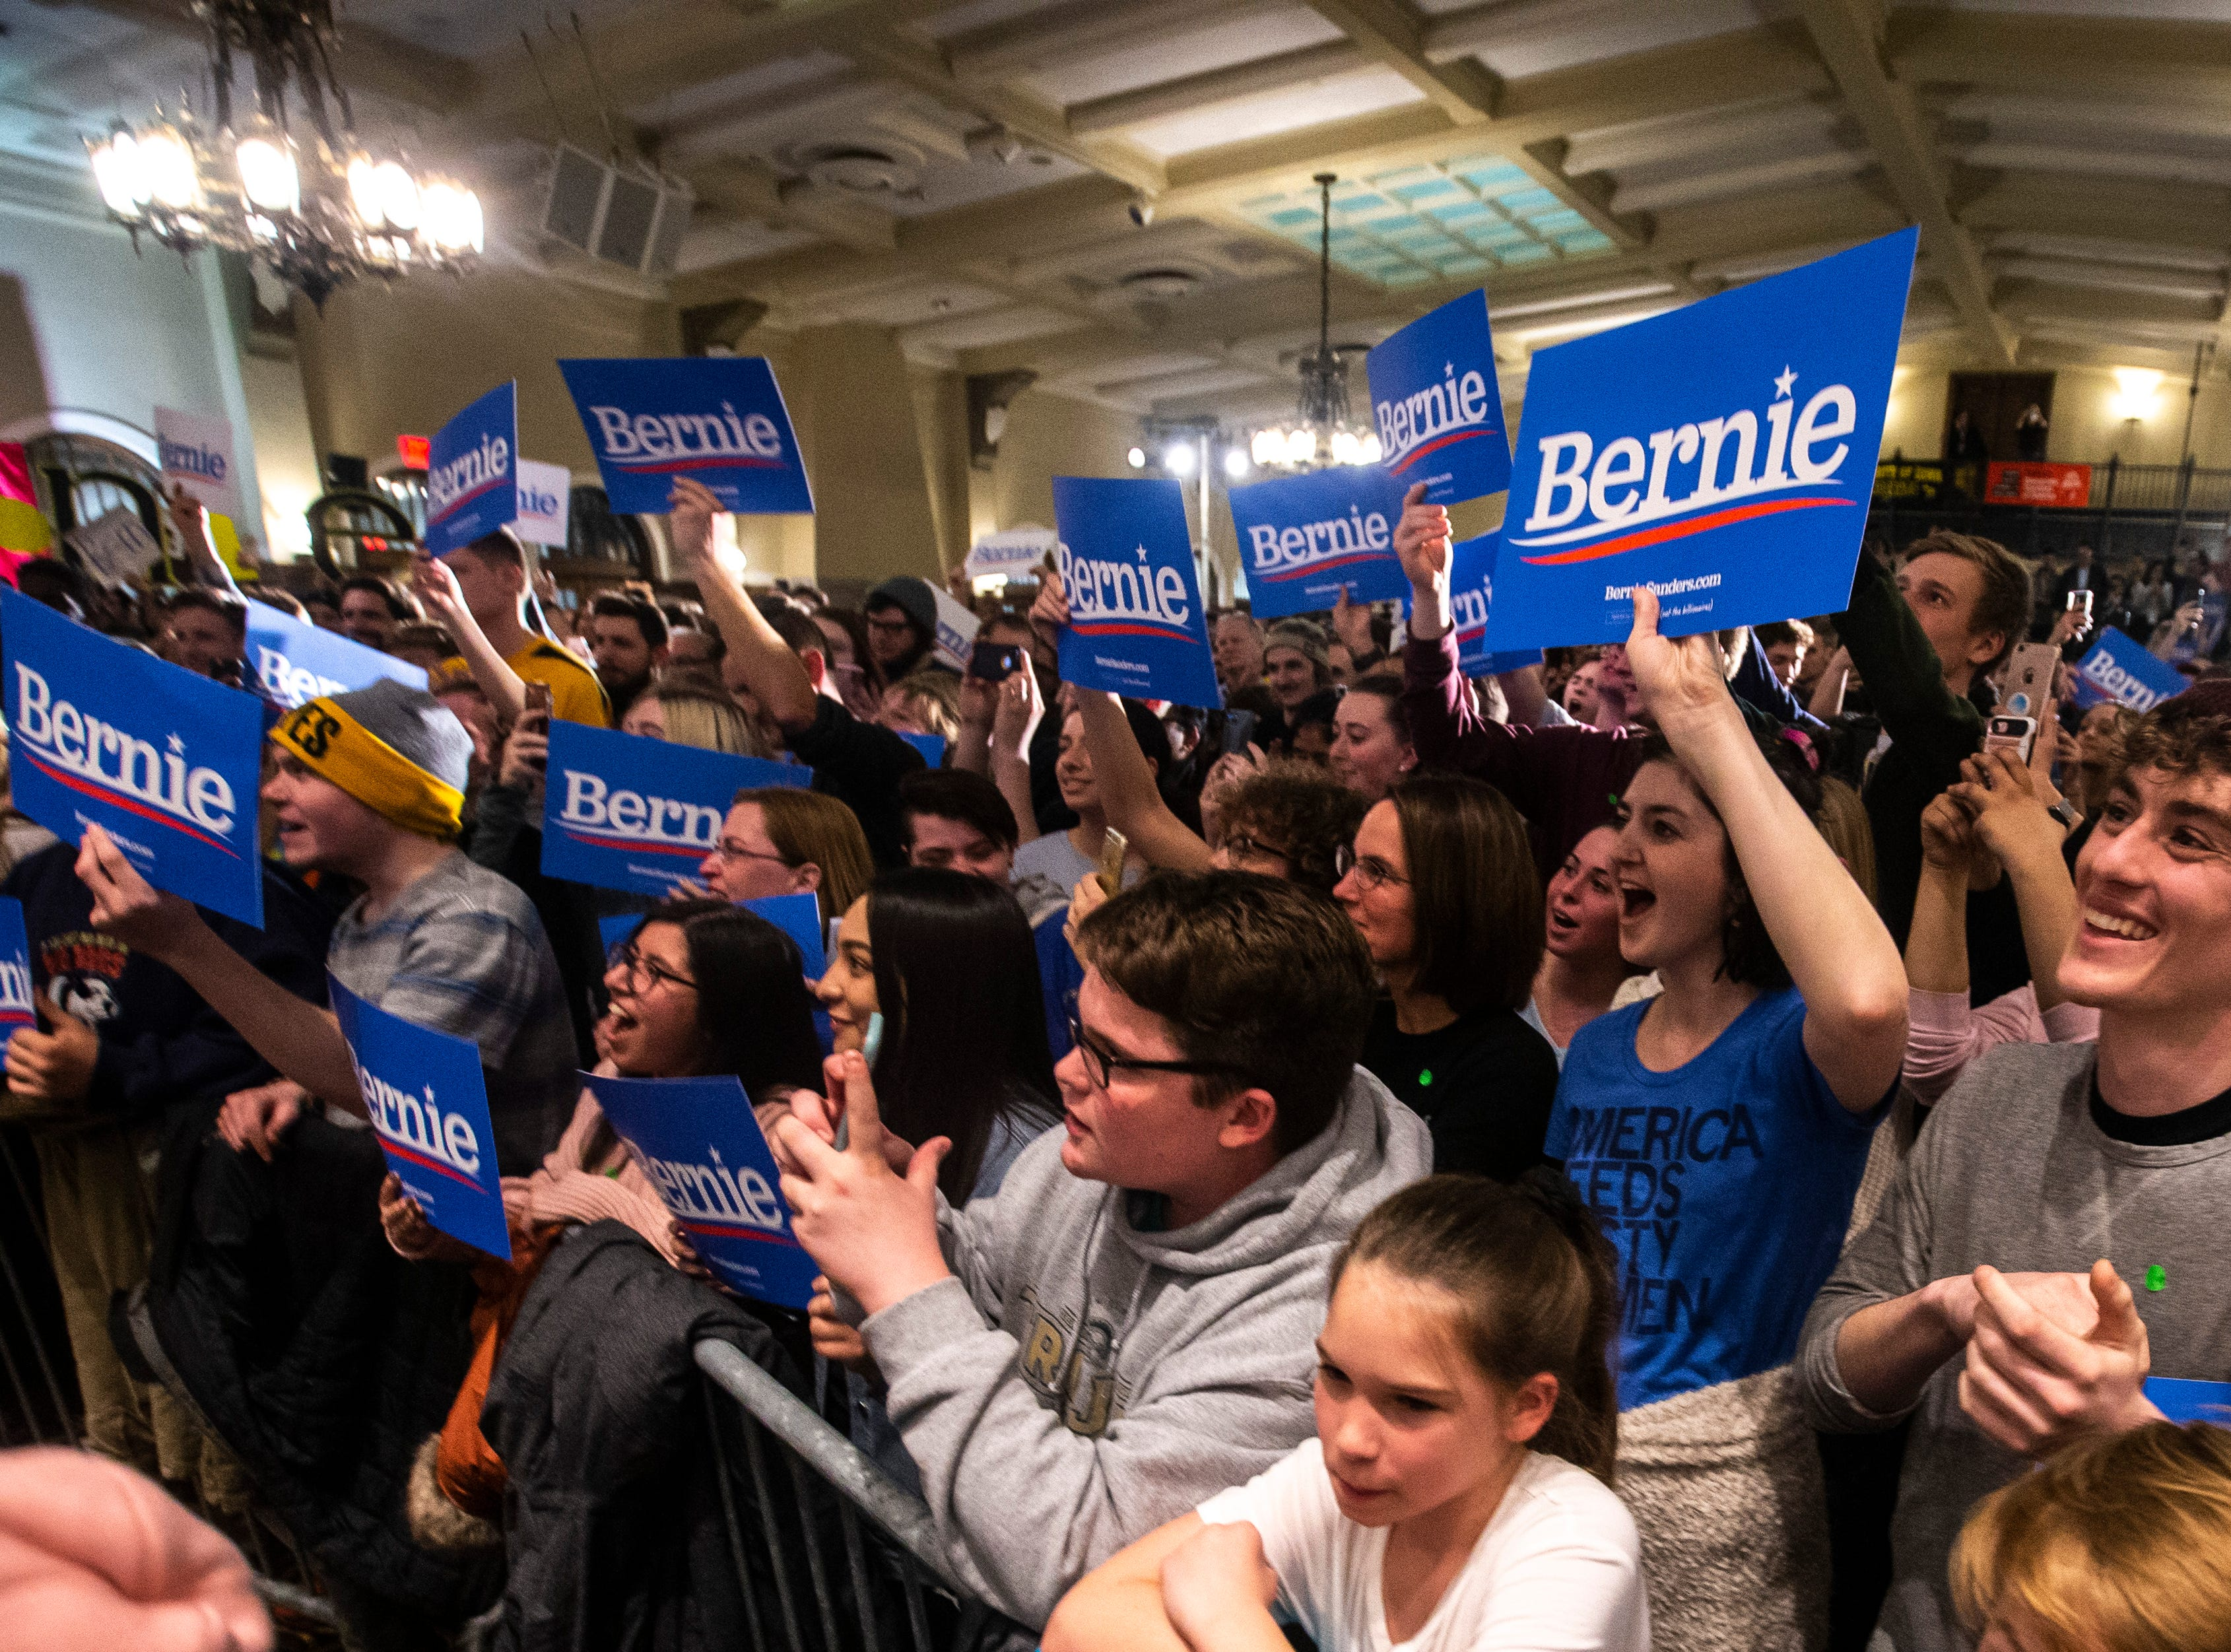 Members of the crowd cheer for U.S. Sen. Bernie Sanders, I-VT, at an event during his first trip to the state ahead of the caucus, Friday, March 8, 2019, at the Iowa Memorial Union on the University of Iowa campus in Iowa City, Iowa.